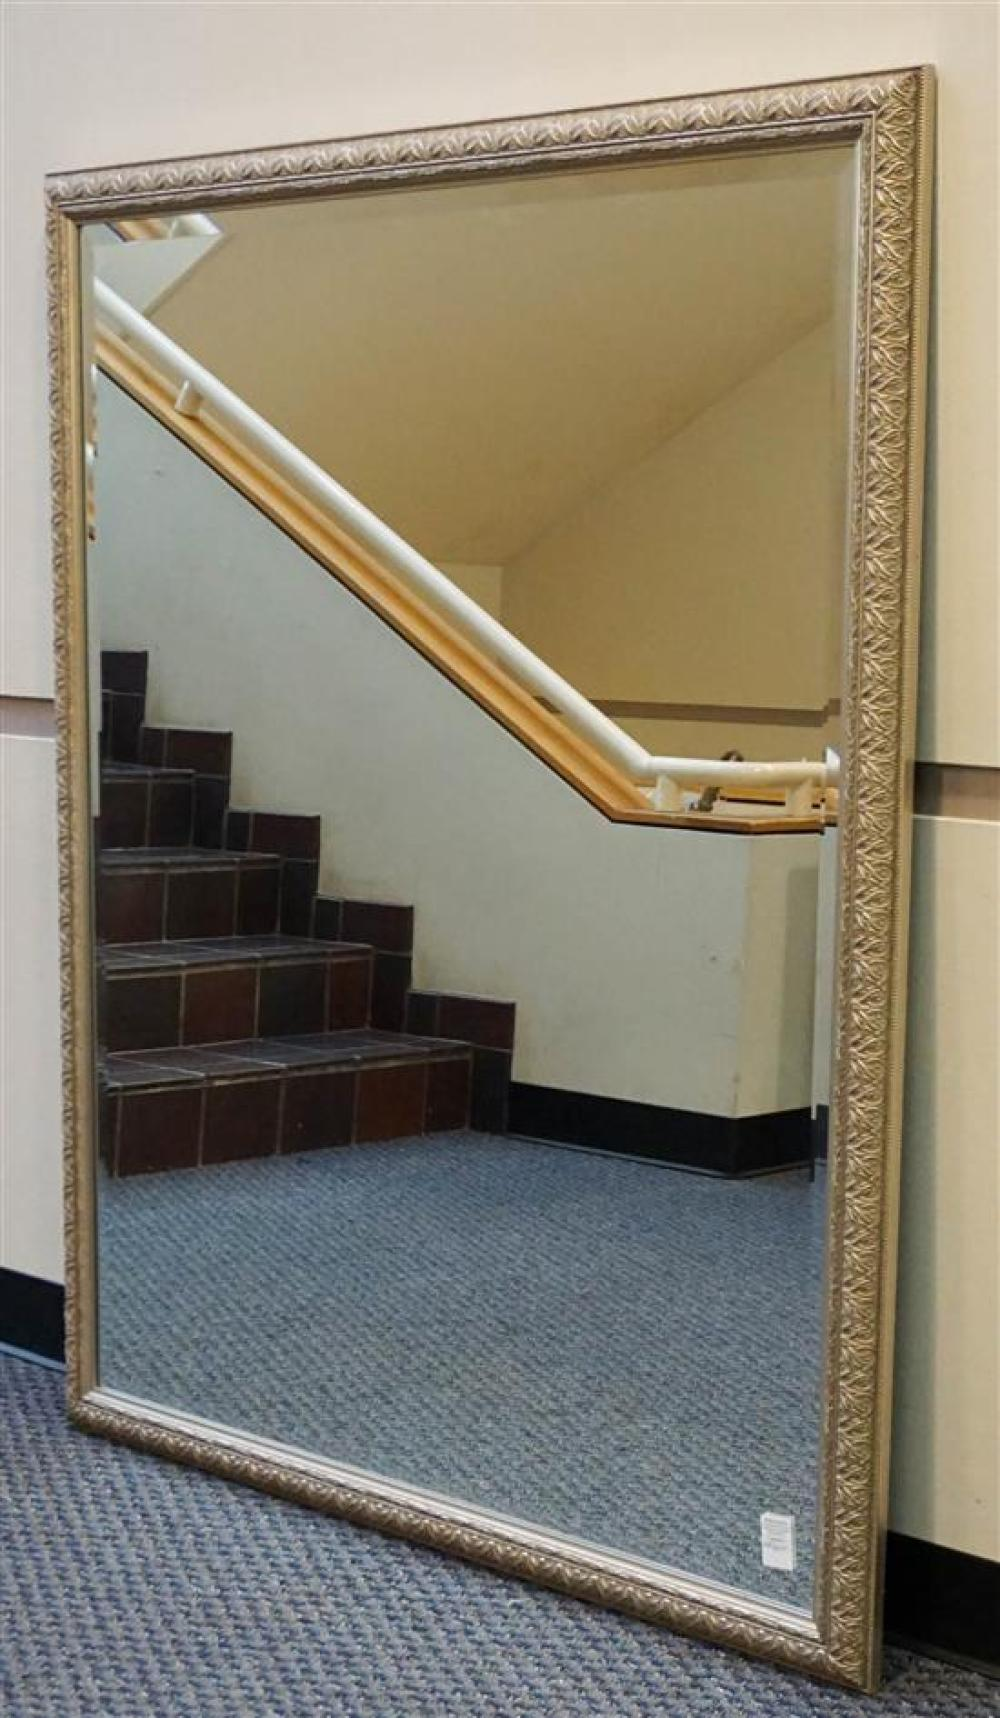 Silvered Wood Frame Bevel Edge Mirror, 57 x 45-1/2 in